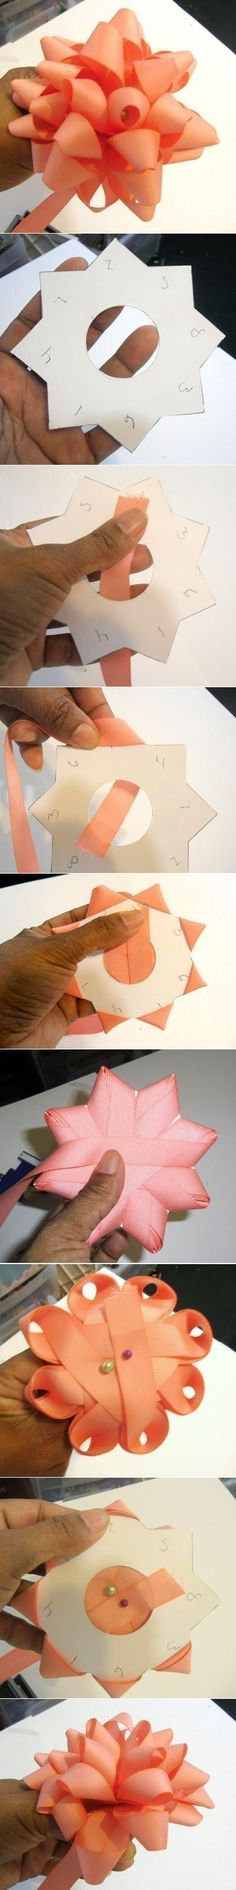 Sewing Ribbon Bow